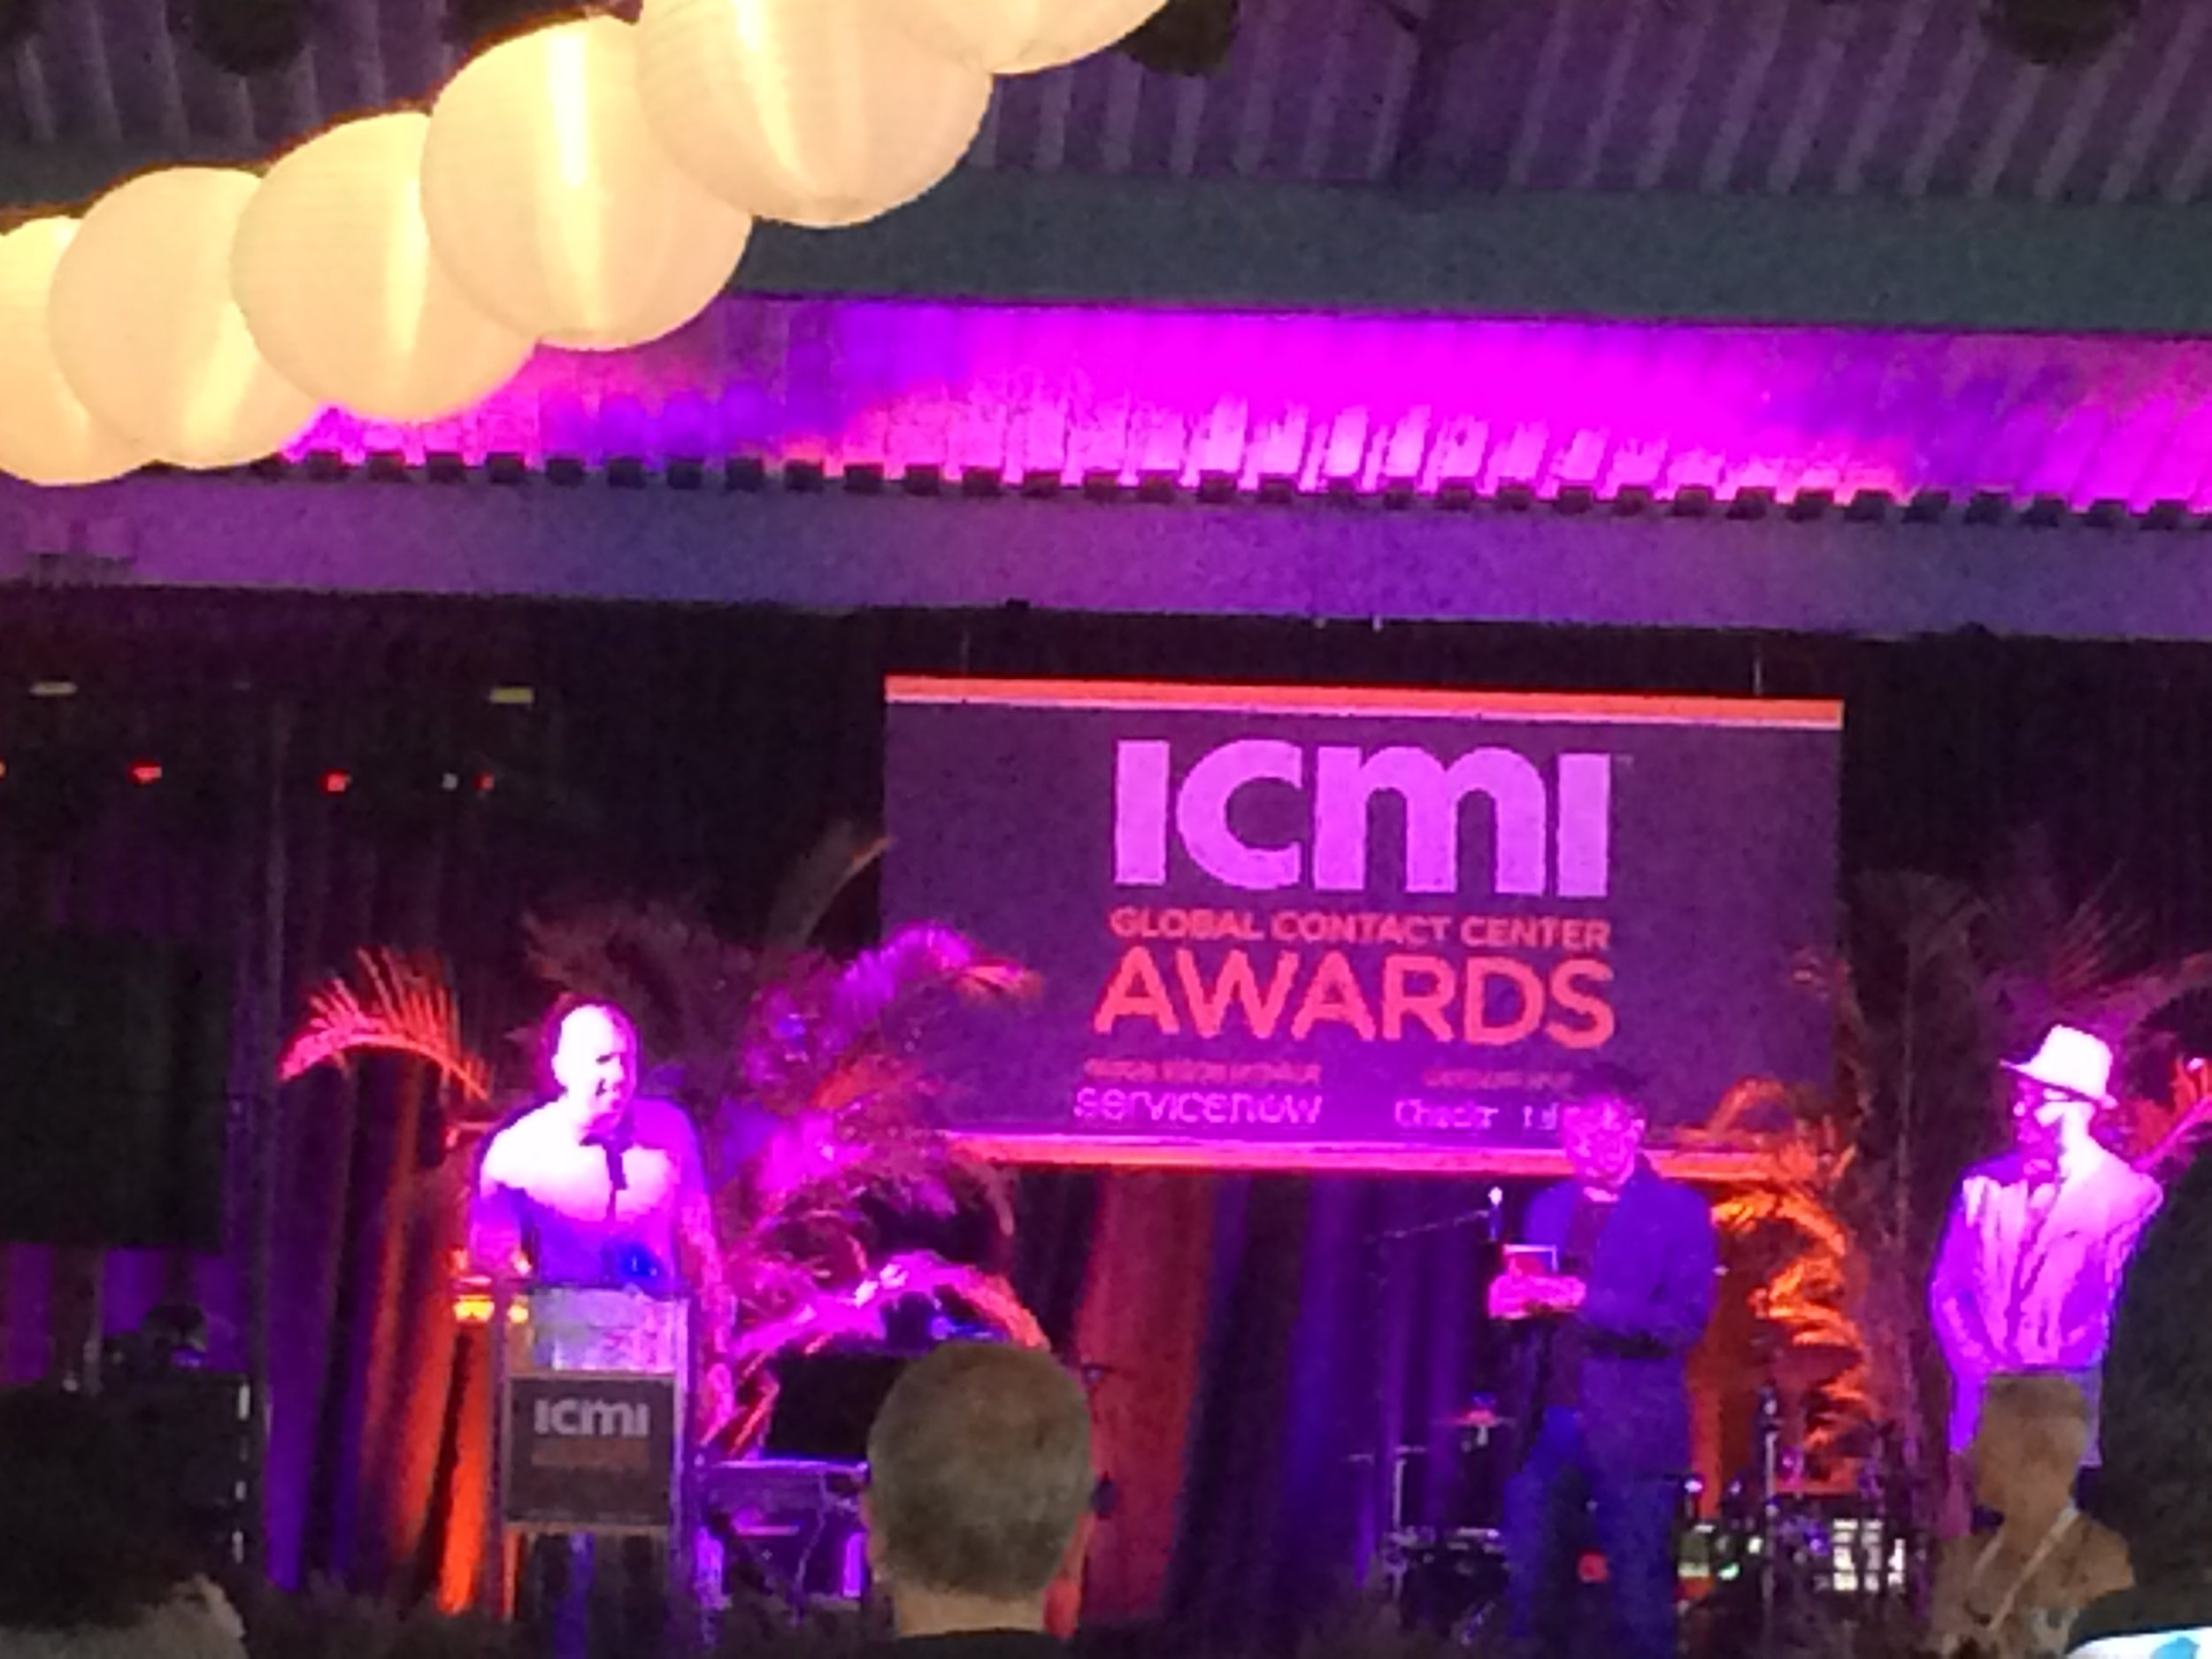 Obligatory blurry photo. From left to right: Marc Dyer, David Perry, and Justin Robbins (ICMI's head of award judges and content director)